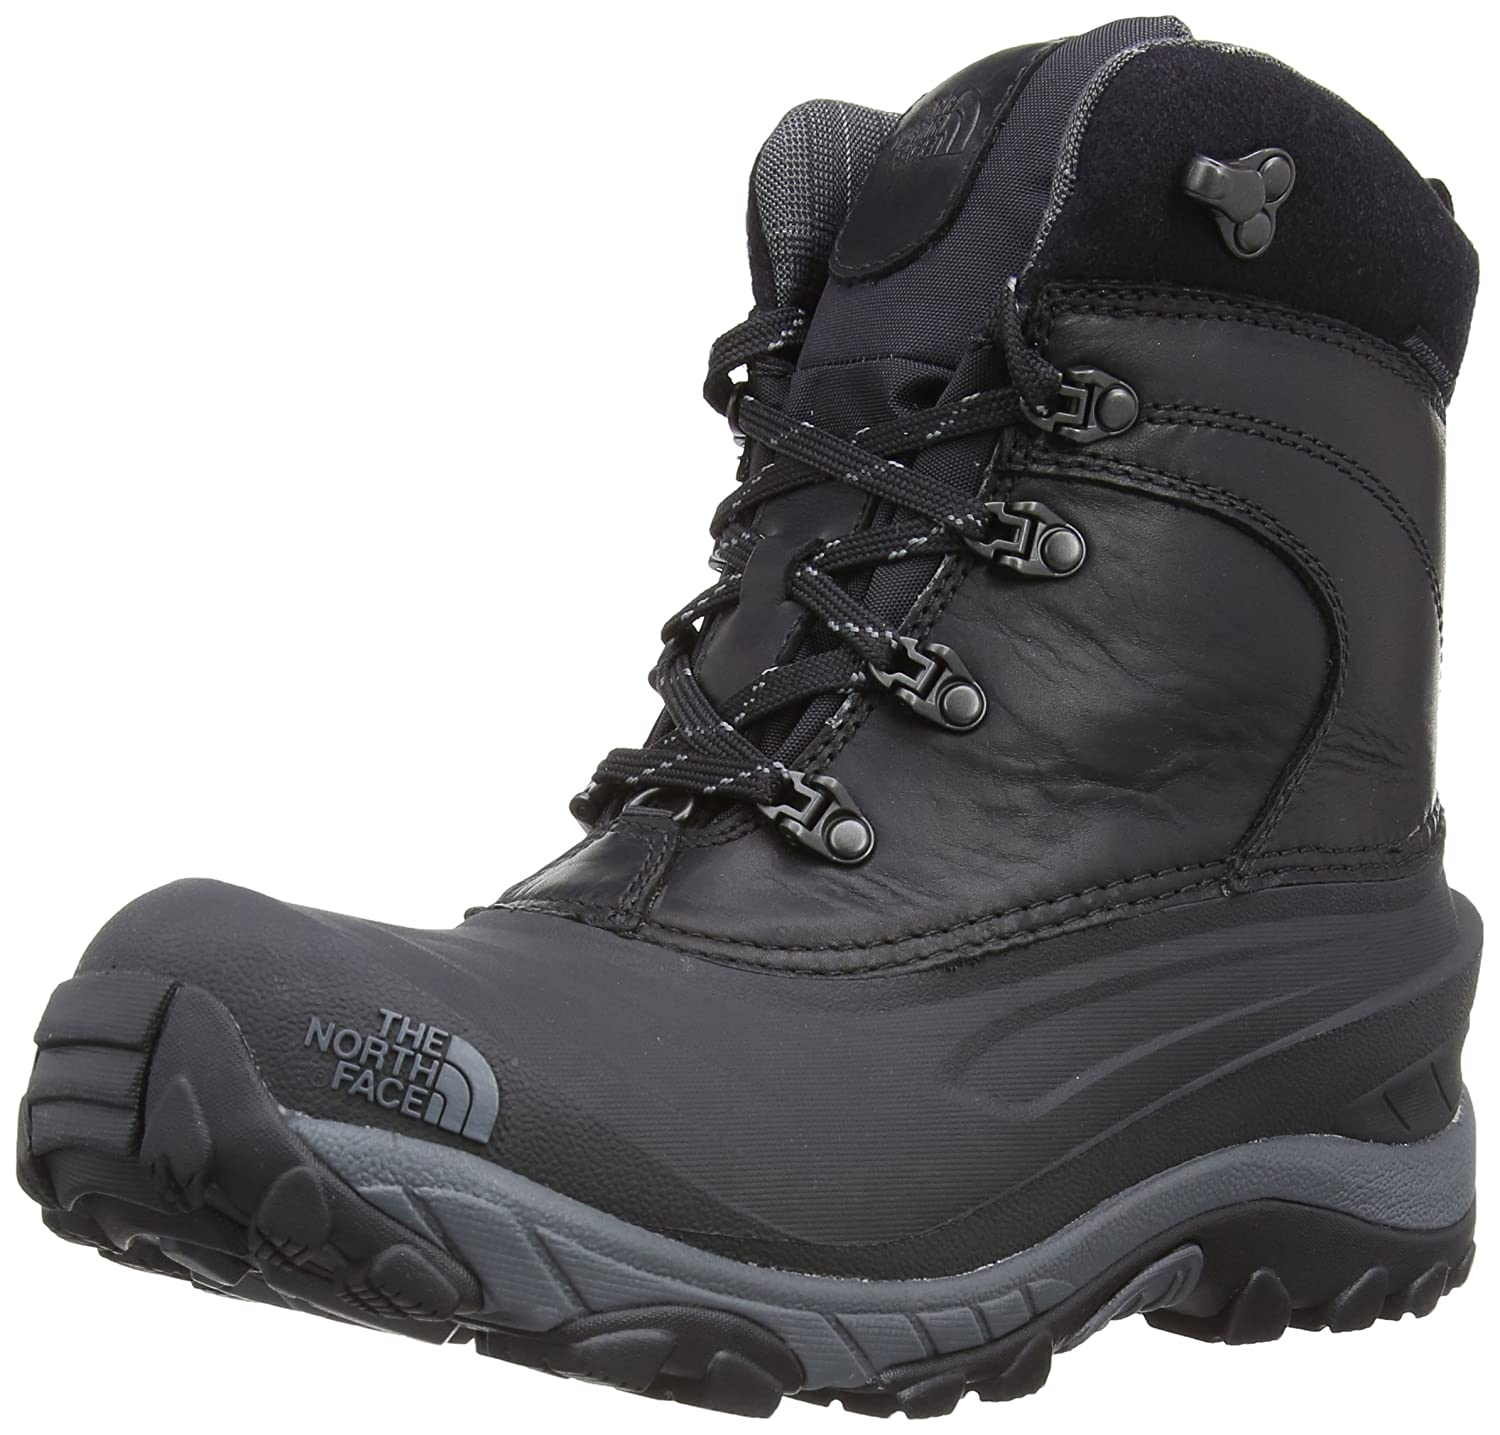 discount north face snow boots « Technopreneur Circle